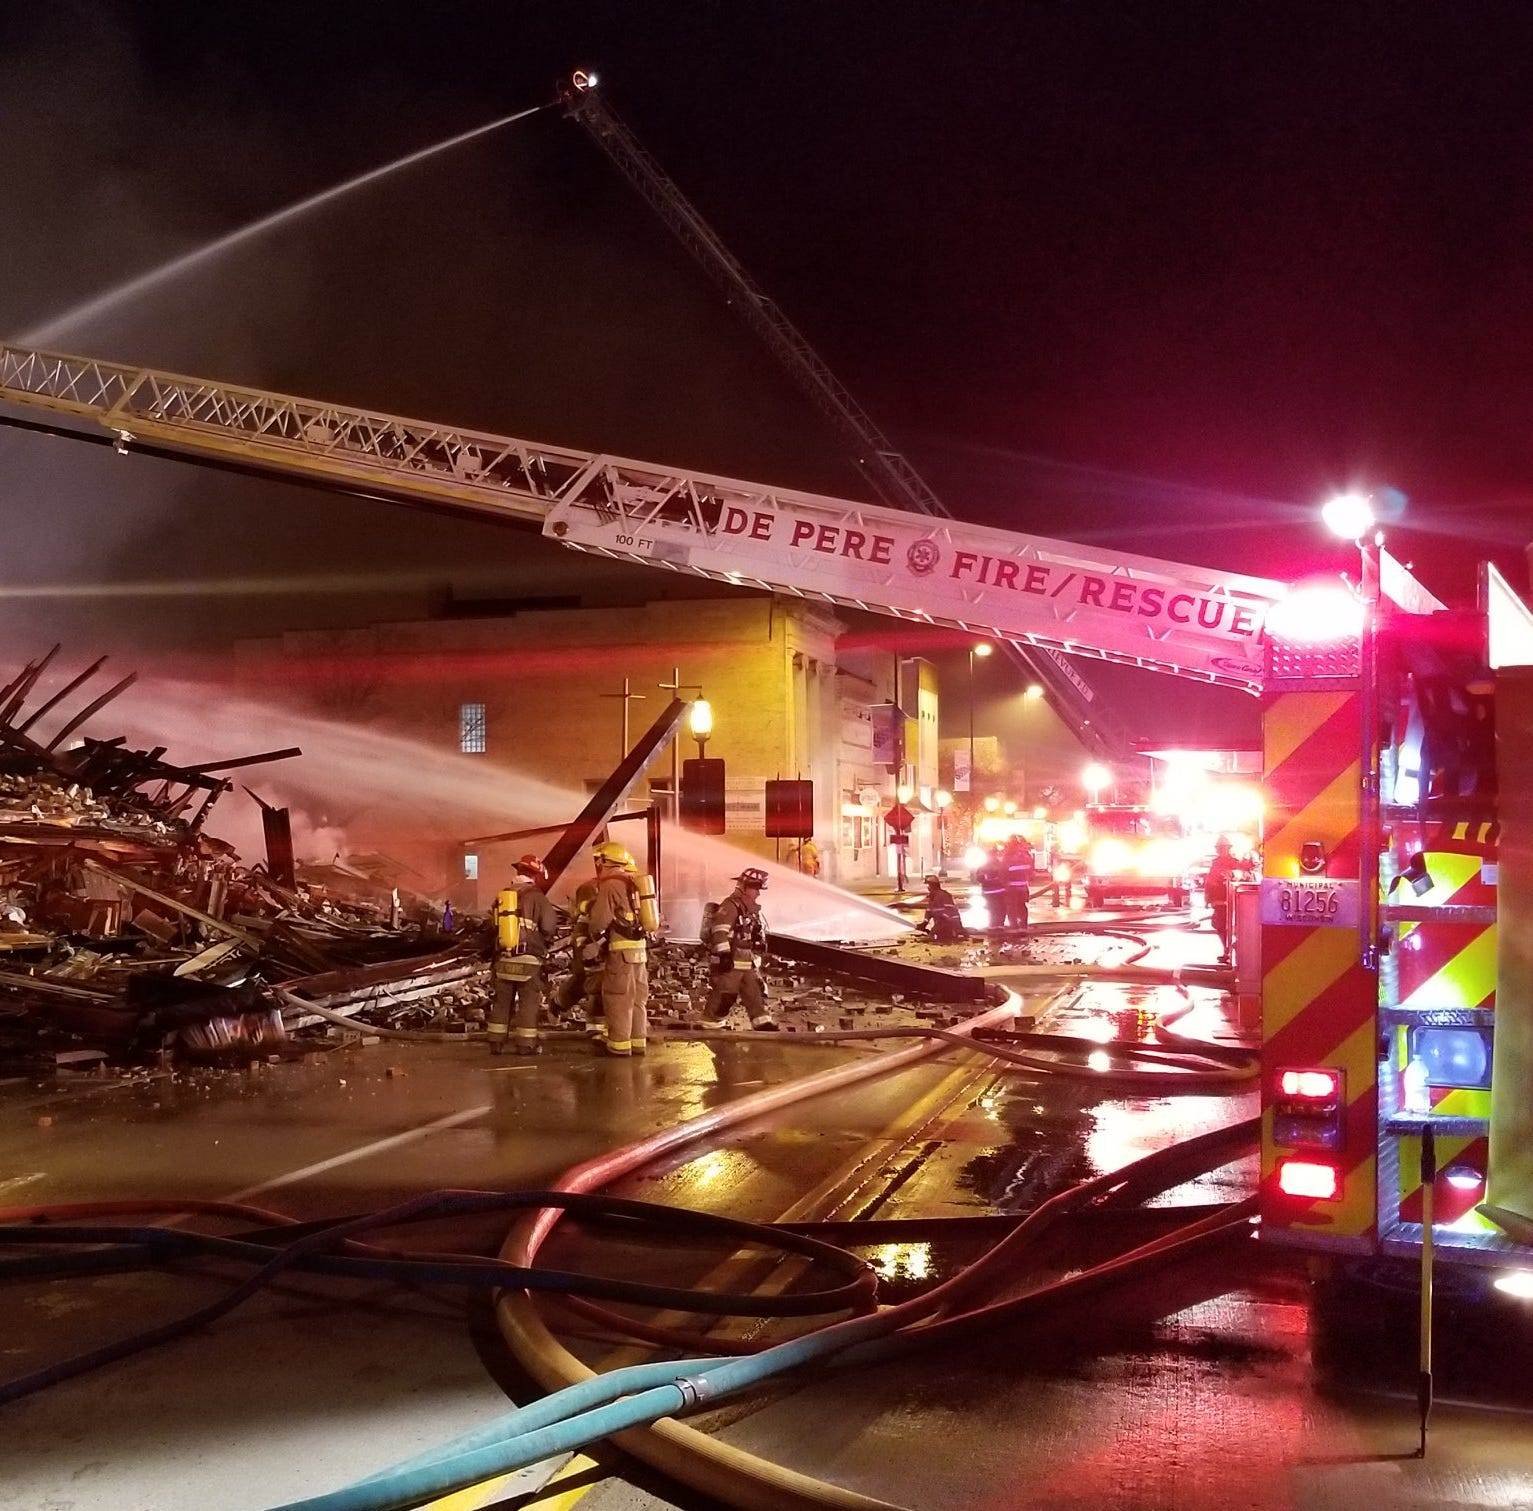 Fire destroys historic De Pere building, several businesses, displaces over 20 people